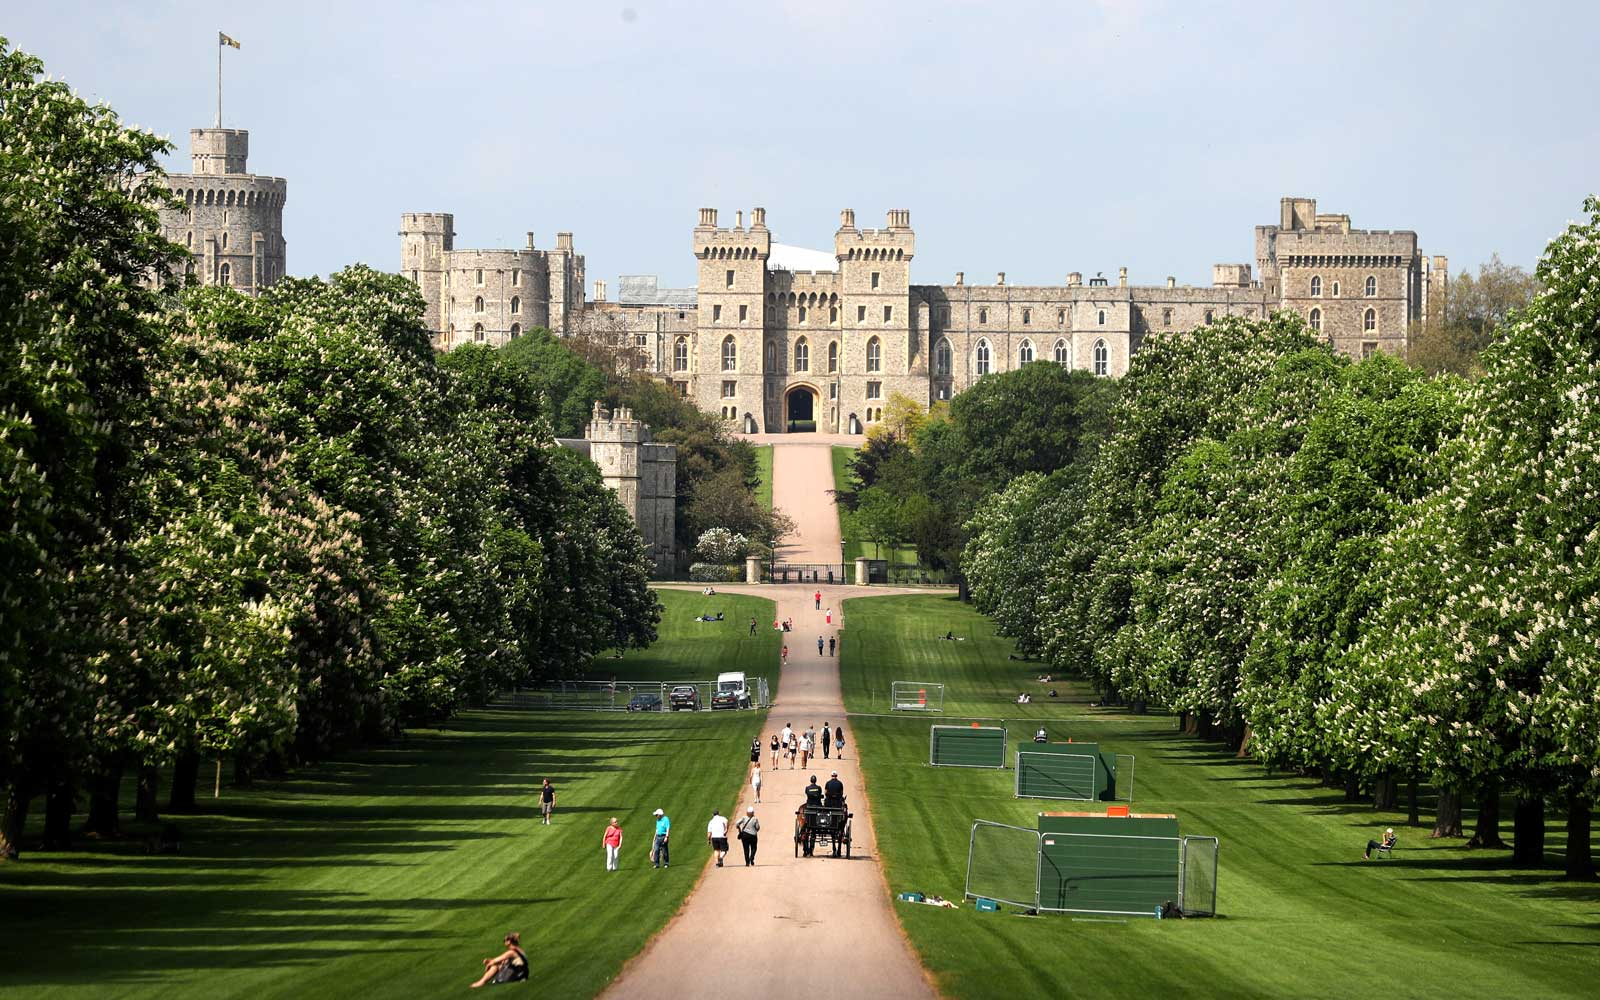 Windsor Castle in Windsor, west of London